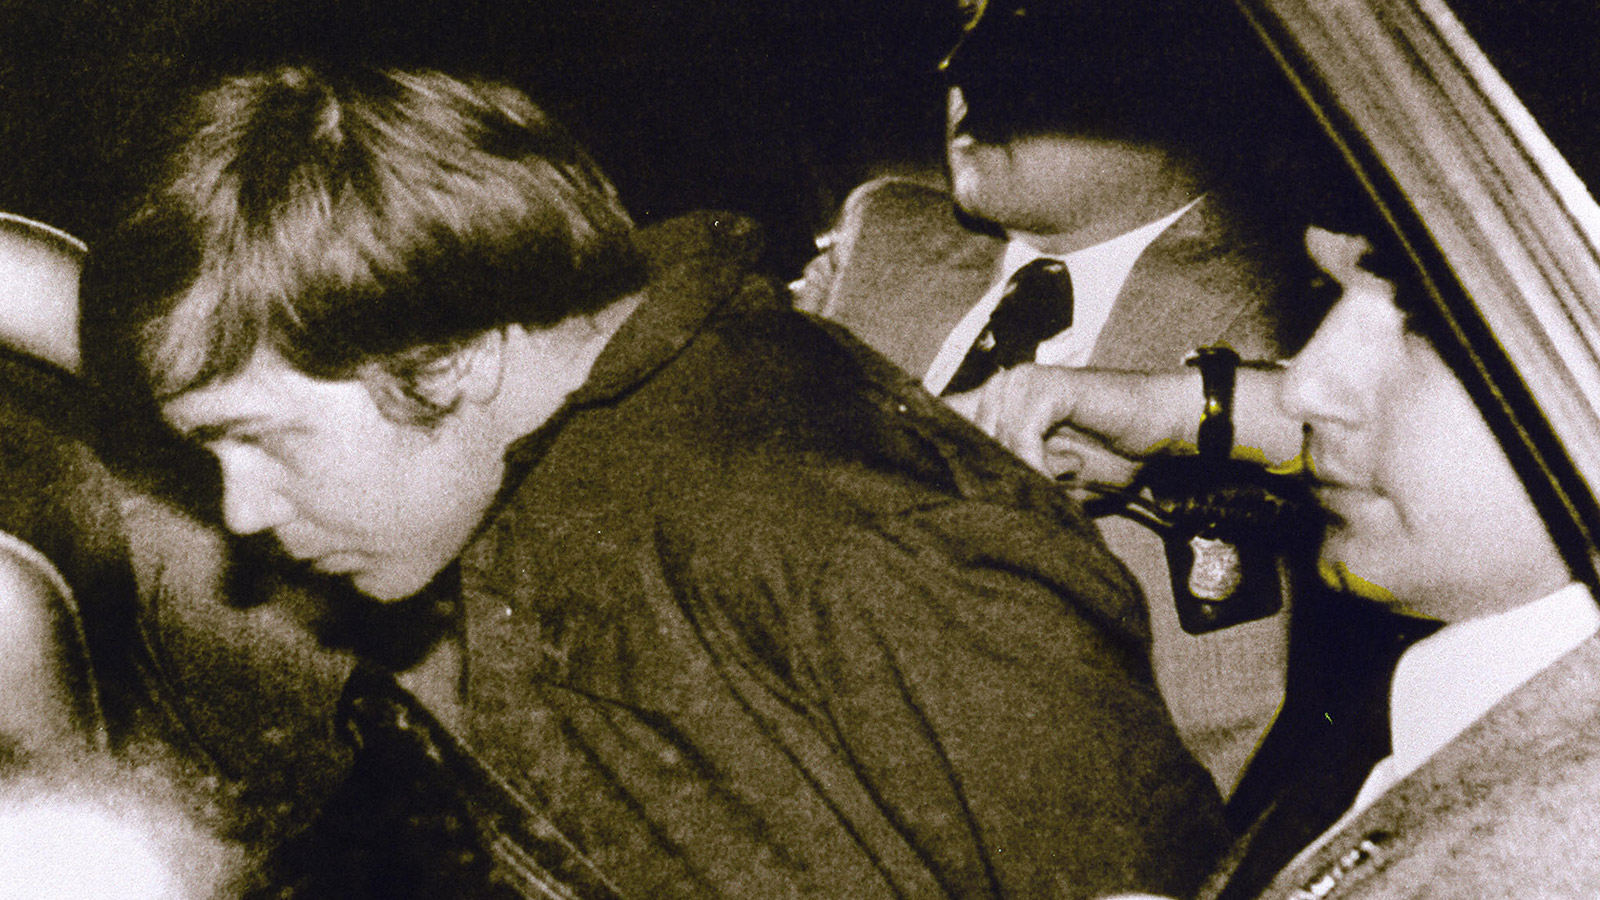 John Hinckley Jr. is escorted by police in Washington, DC, on March 30, 1981, following his arrest after shooting and seriously wounding then President Ronald Reagan. (credit: AFP/Getty Images)